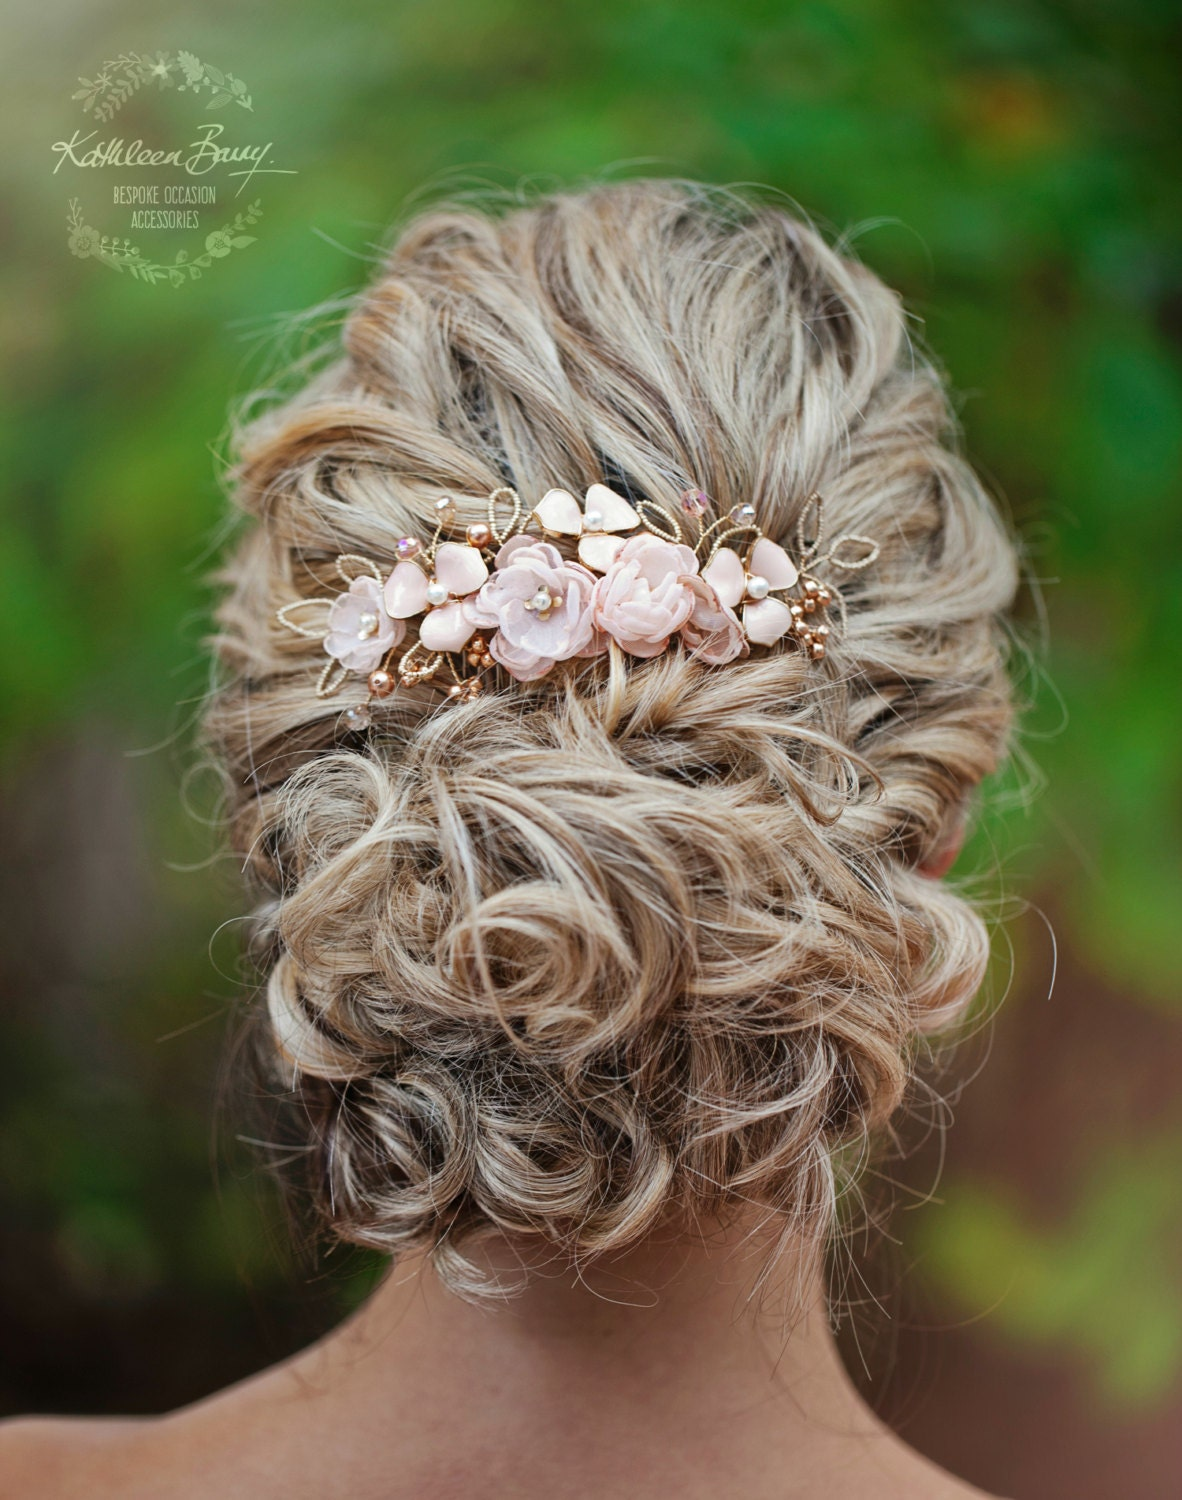 Rose gold wedding hair accessories - Rose Gold Hair Comb Hairpiece Blush Pink Wedding Bridal Hair Accessories Veil Comb Gold Silver Option